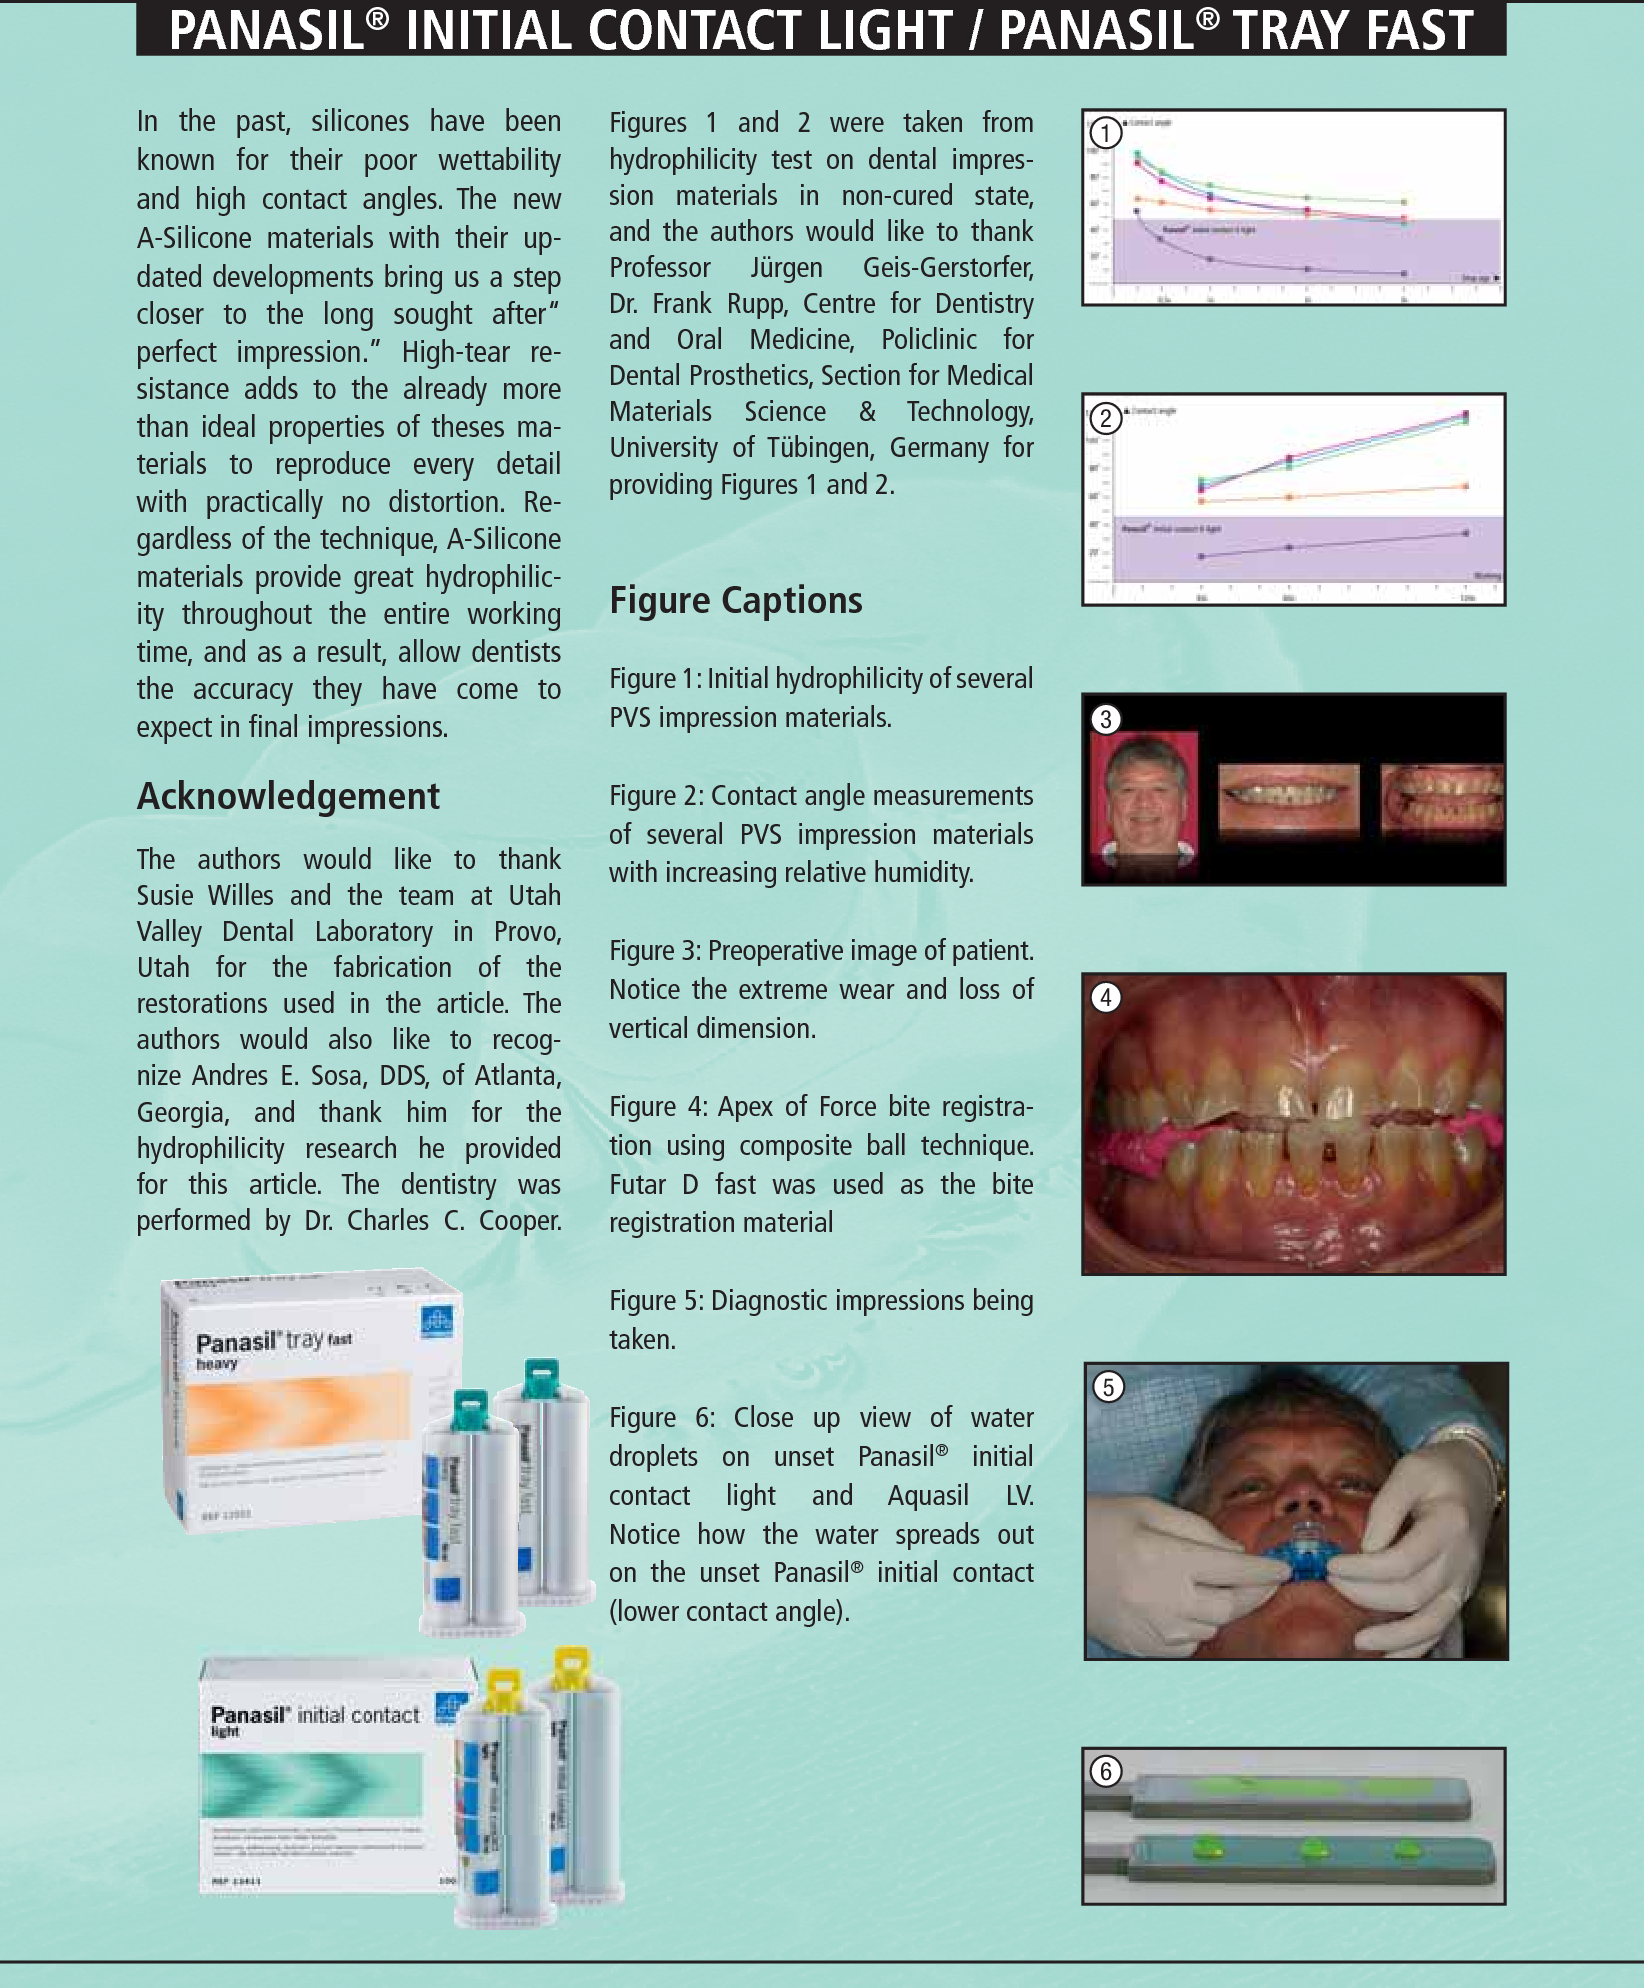 Figure 5 from CASE STUDY 03   10 PANASIL ® INITIAL CONTACT